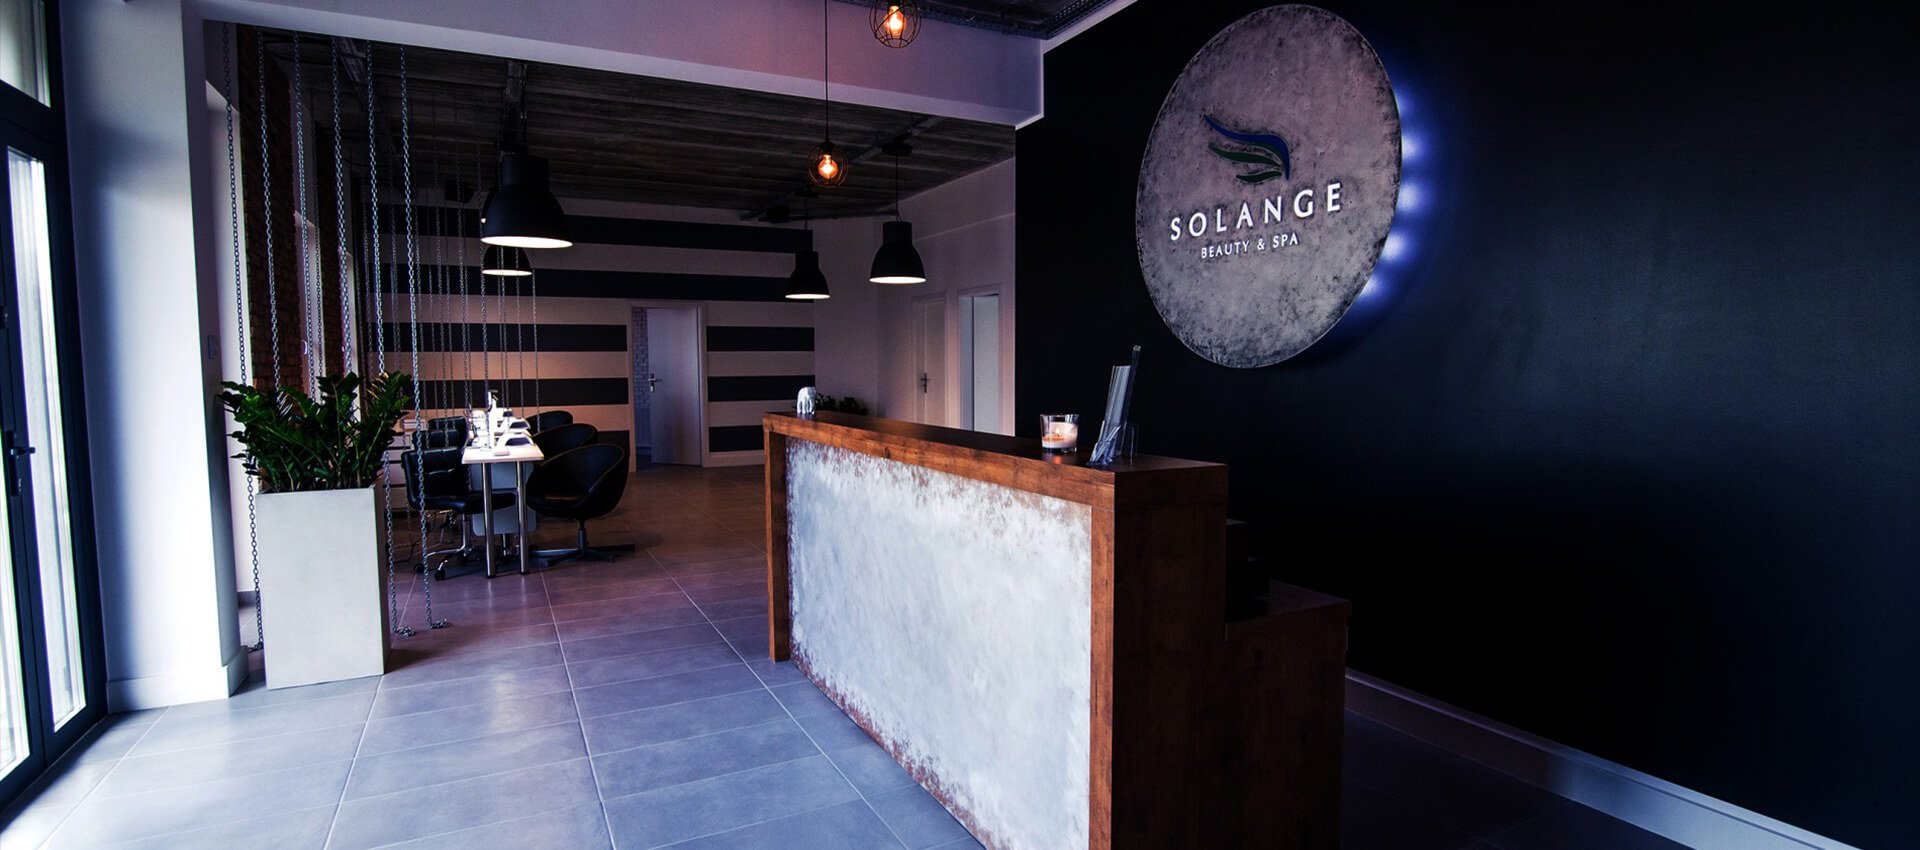 Solange Beauty & SPA #salon spa